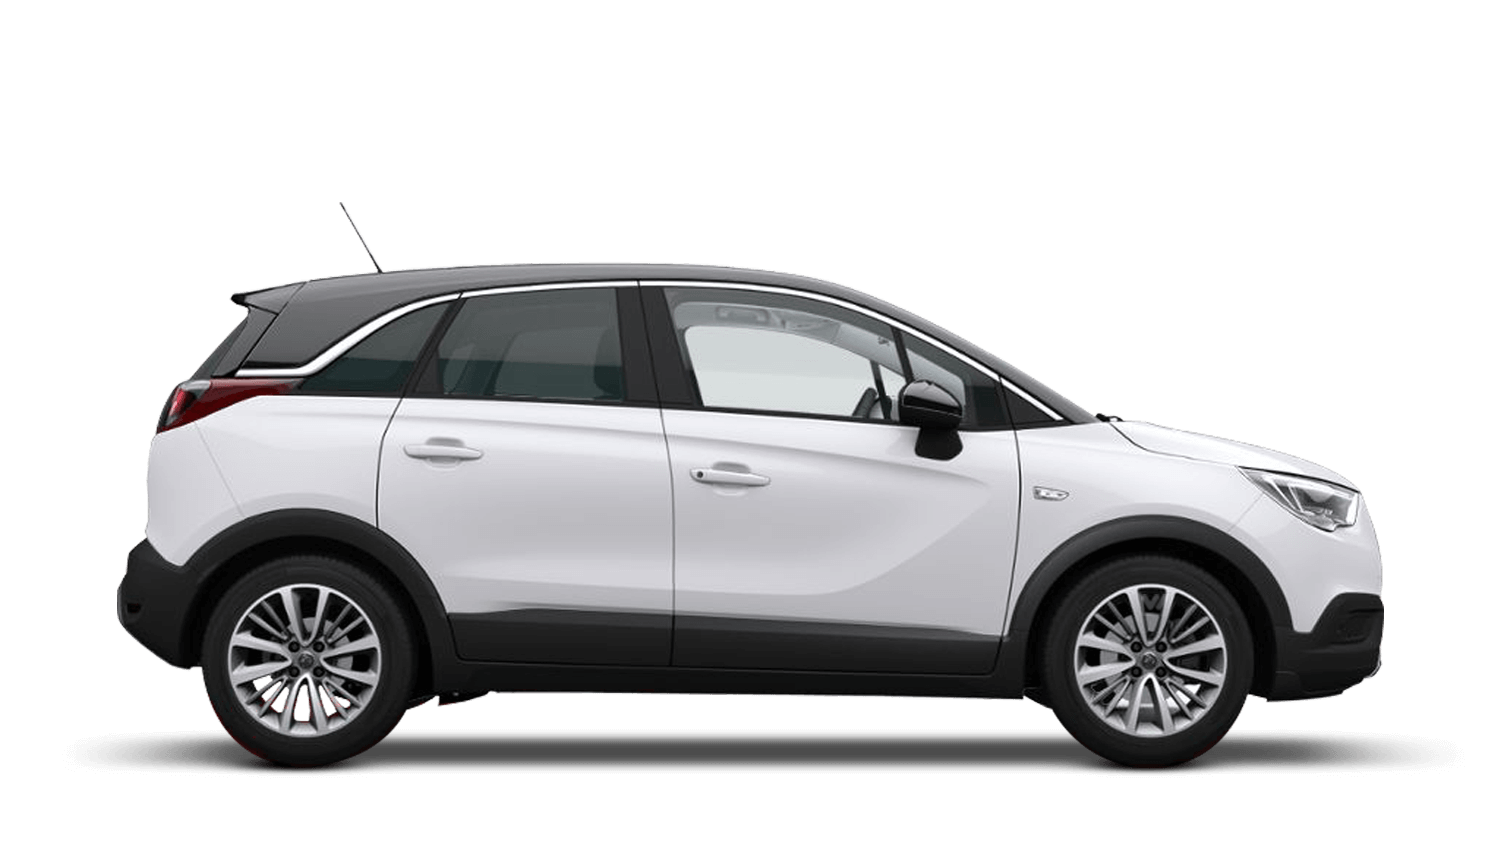 New Vauxhall Crossland X